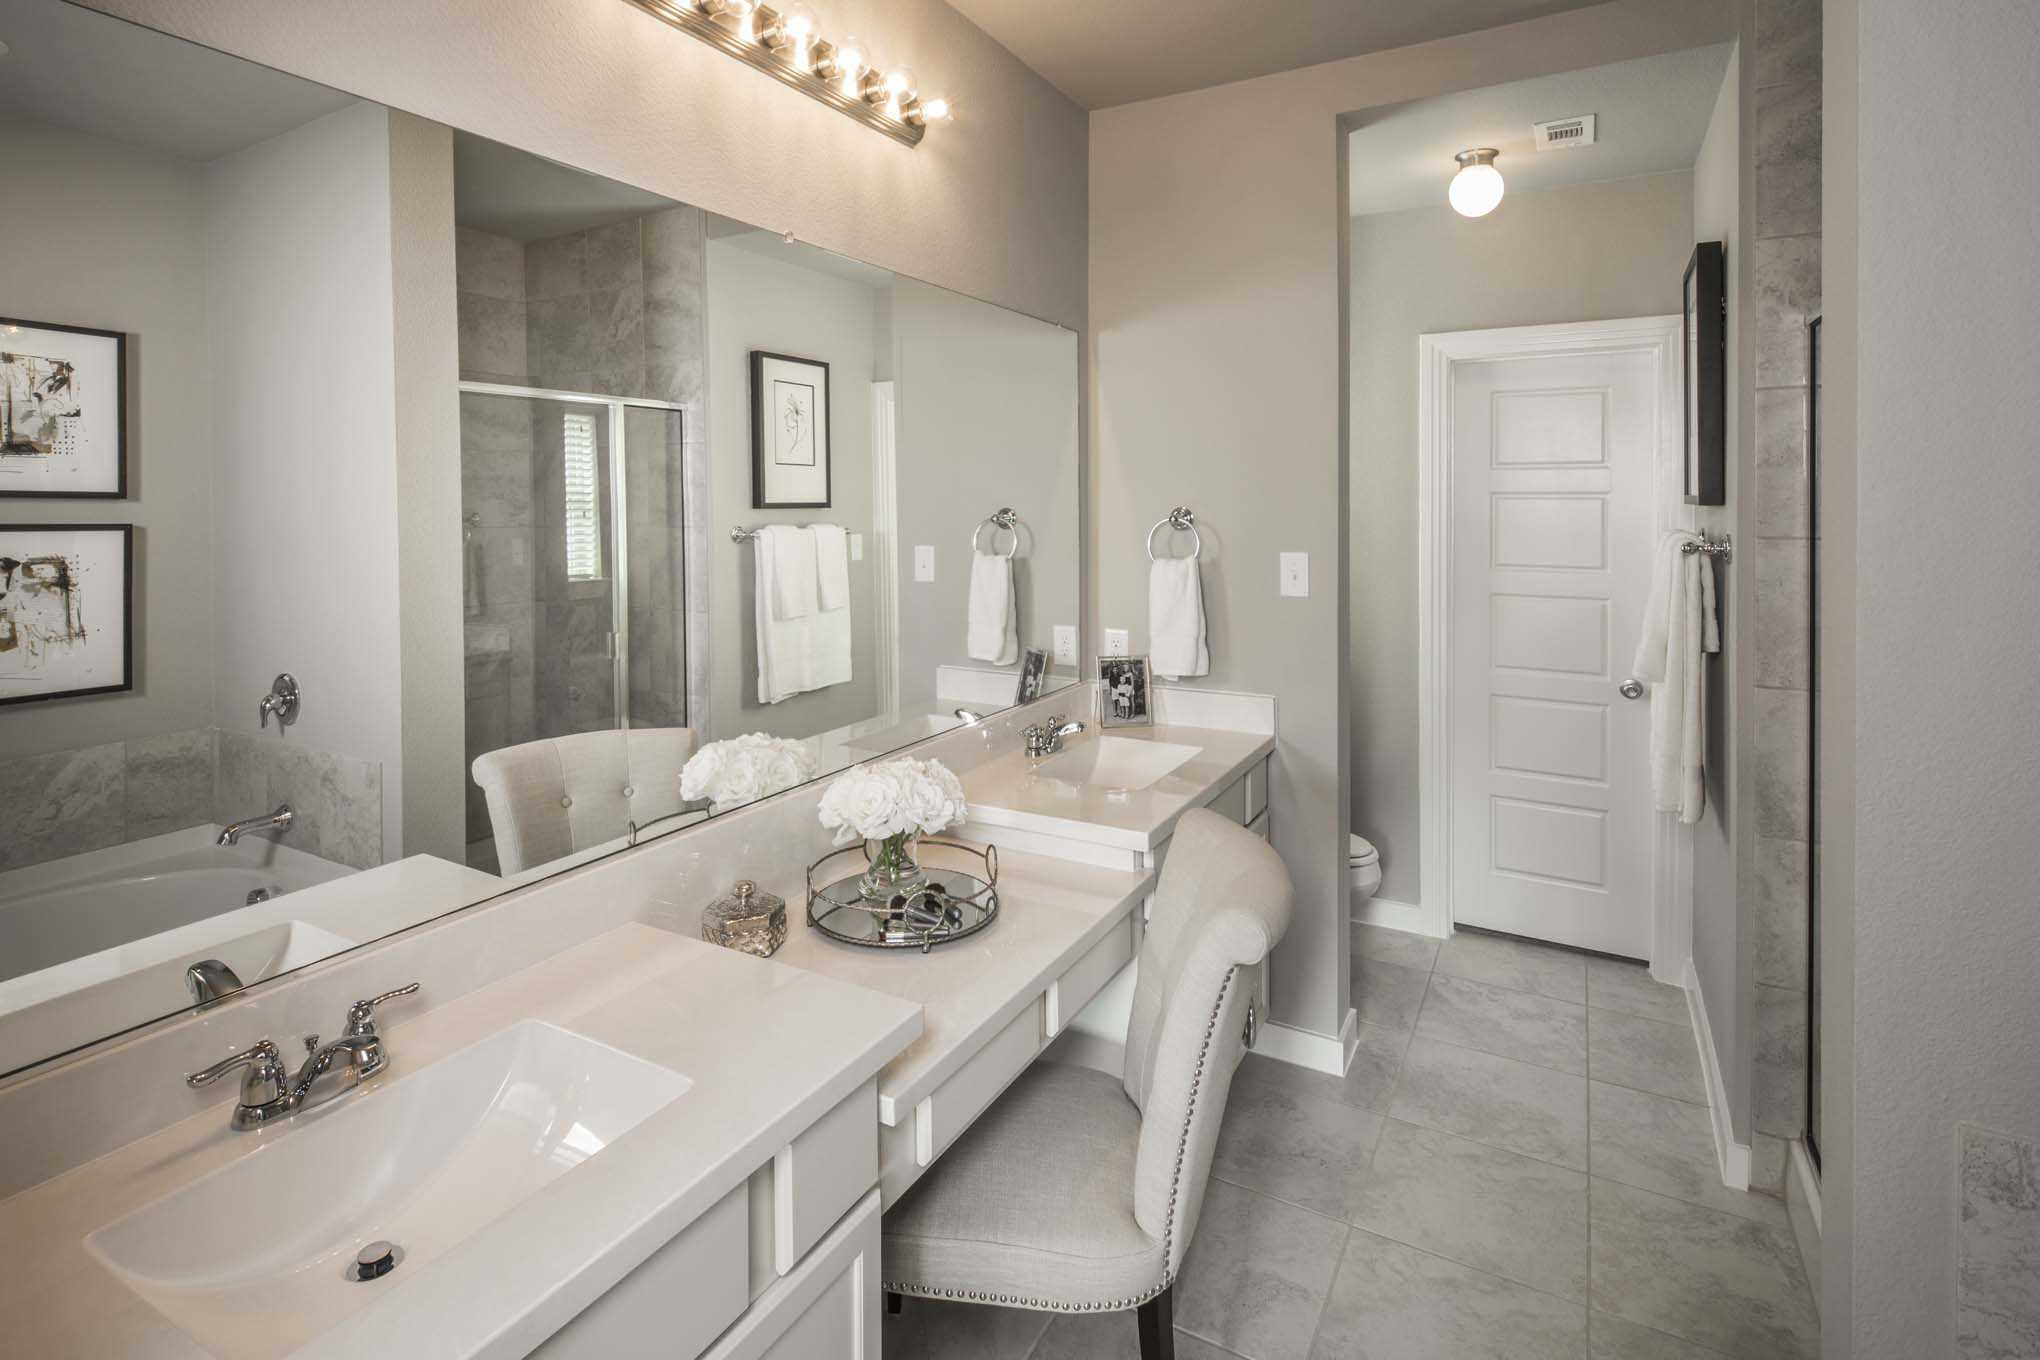 Bathroom featured in the Plan Westbury By Highland Homes in Houston, TX